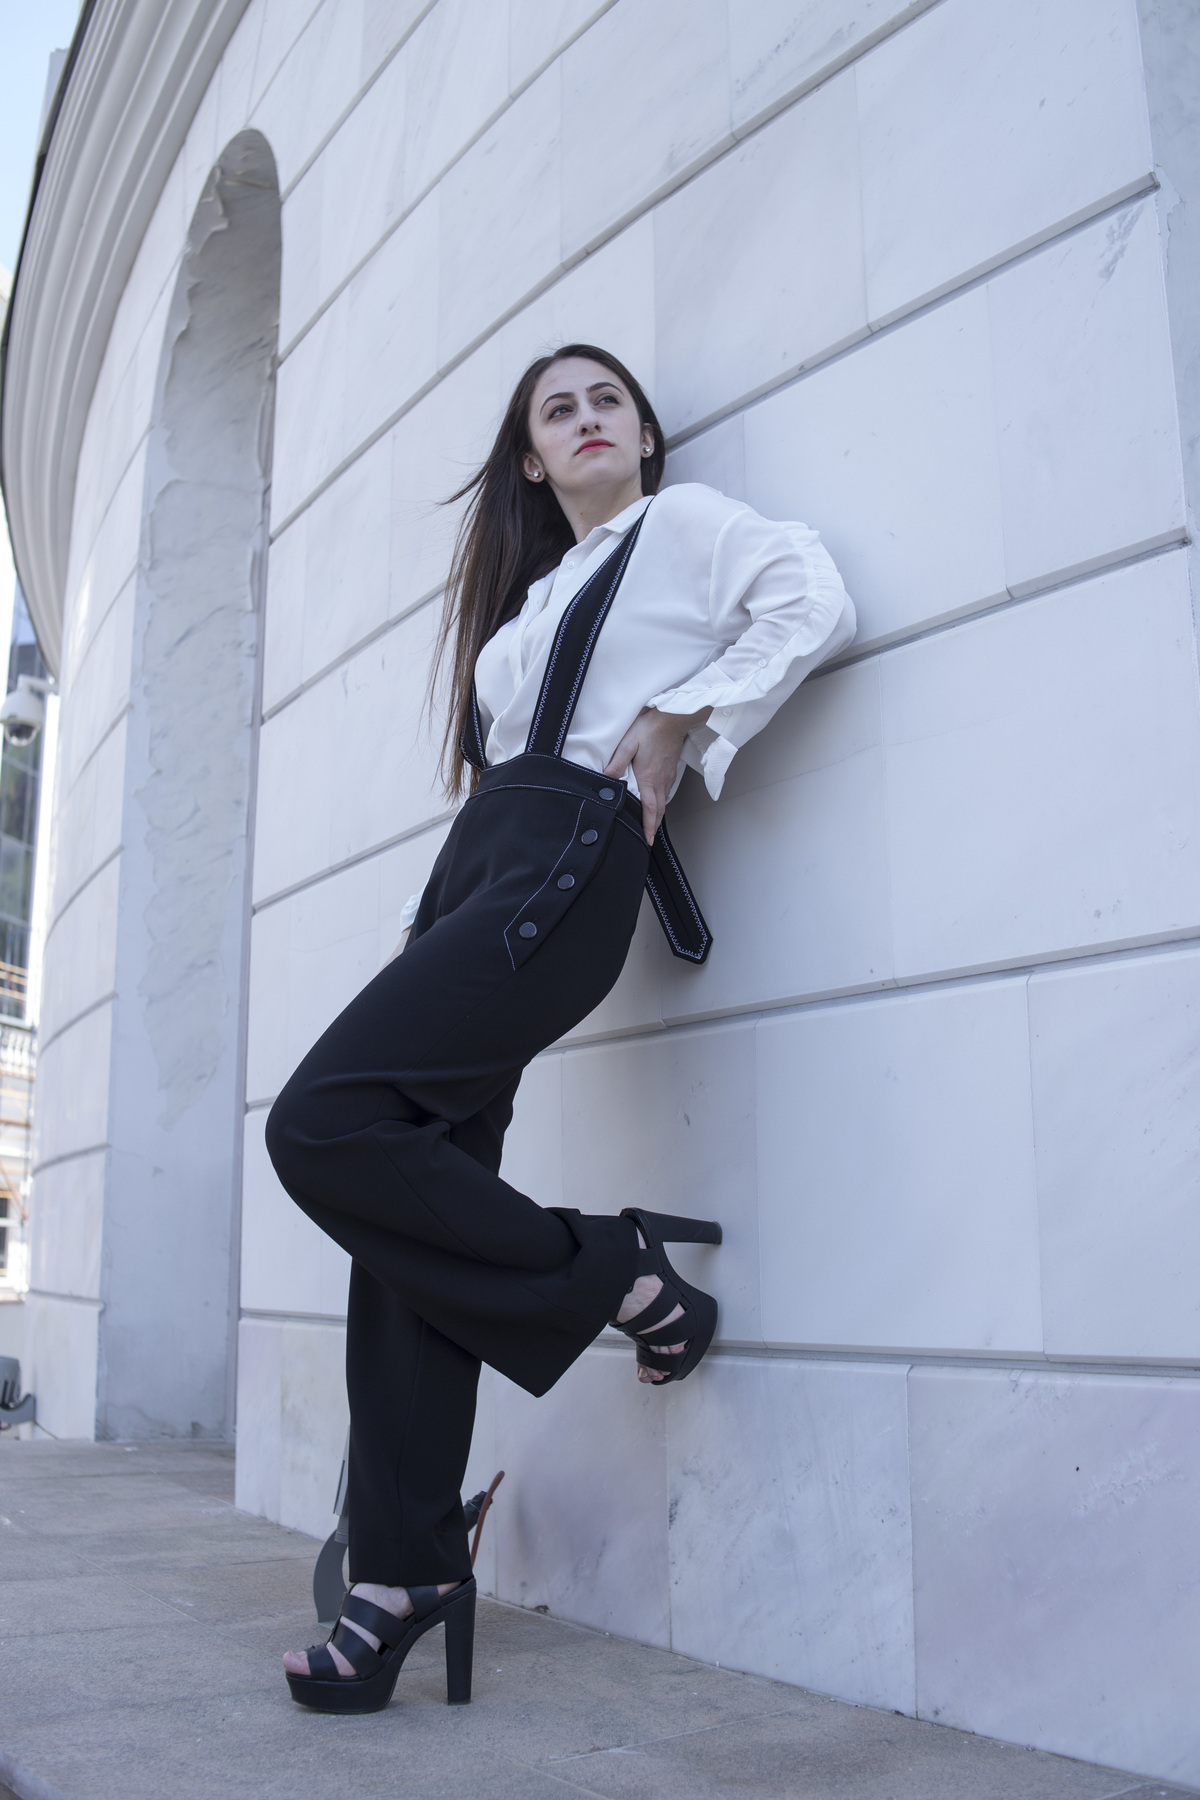 856c6881b21 I am finally sharing with you the photos we shot with these suspender pants  that I